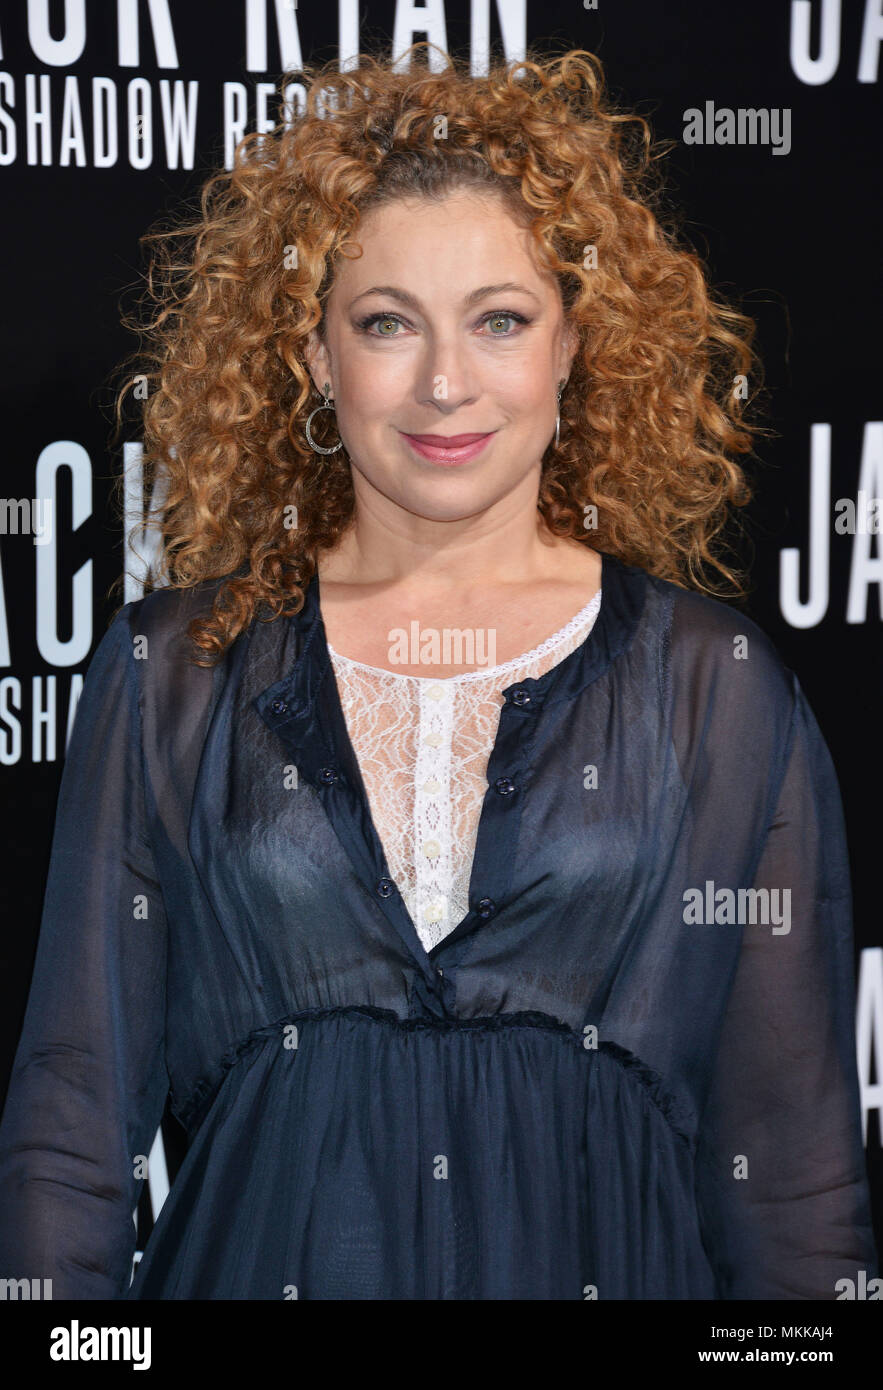 Alex Kingston Arriving At Shadow Recruit Premiere At The Tcl Chinese Theatre In Los Angeles Alex